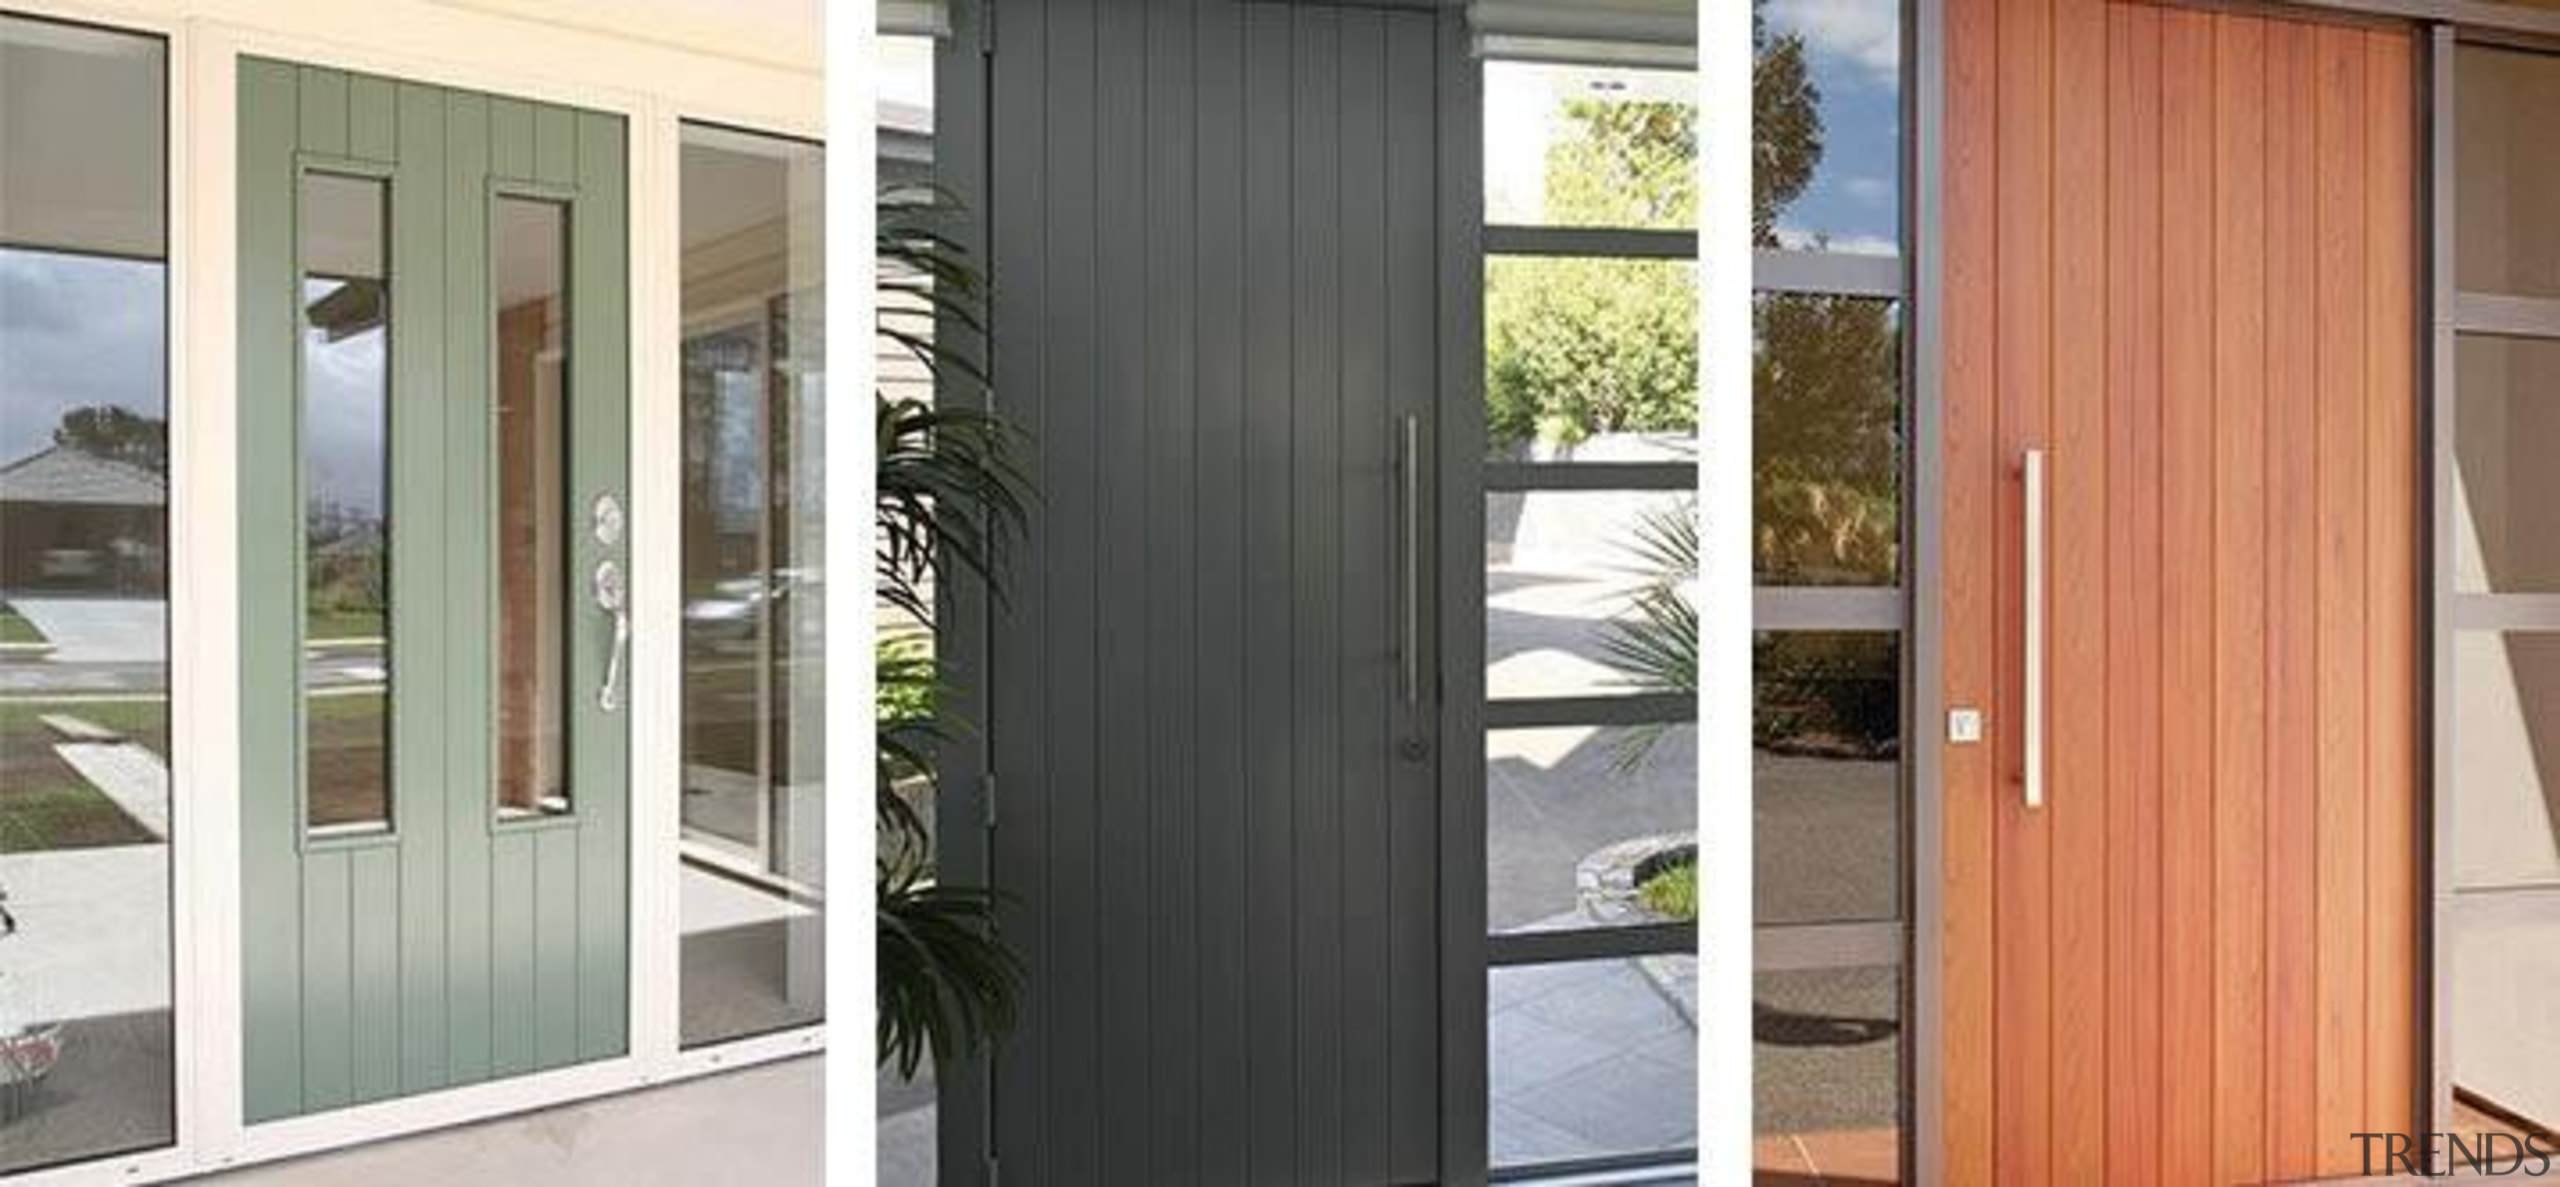 The sleek linear appearance of FIRST® Axis entrance door, home, window, gray